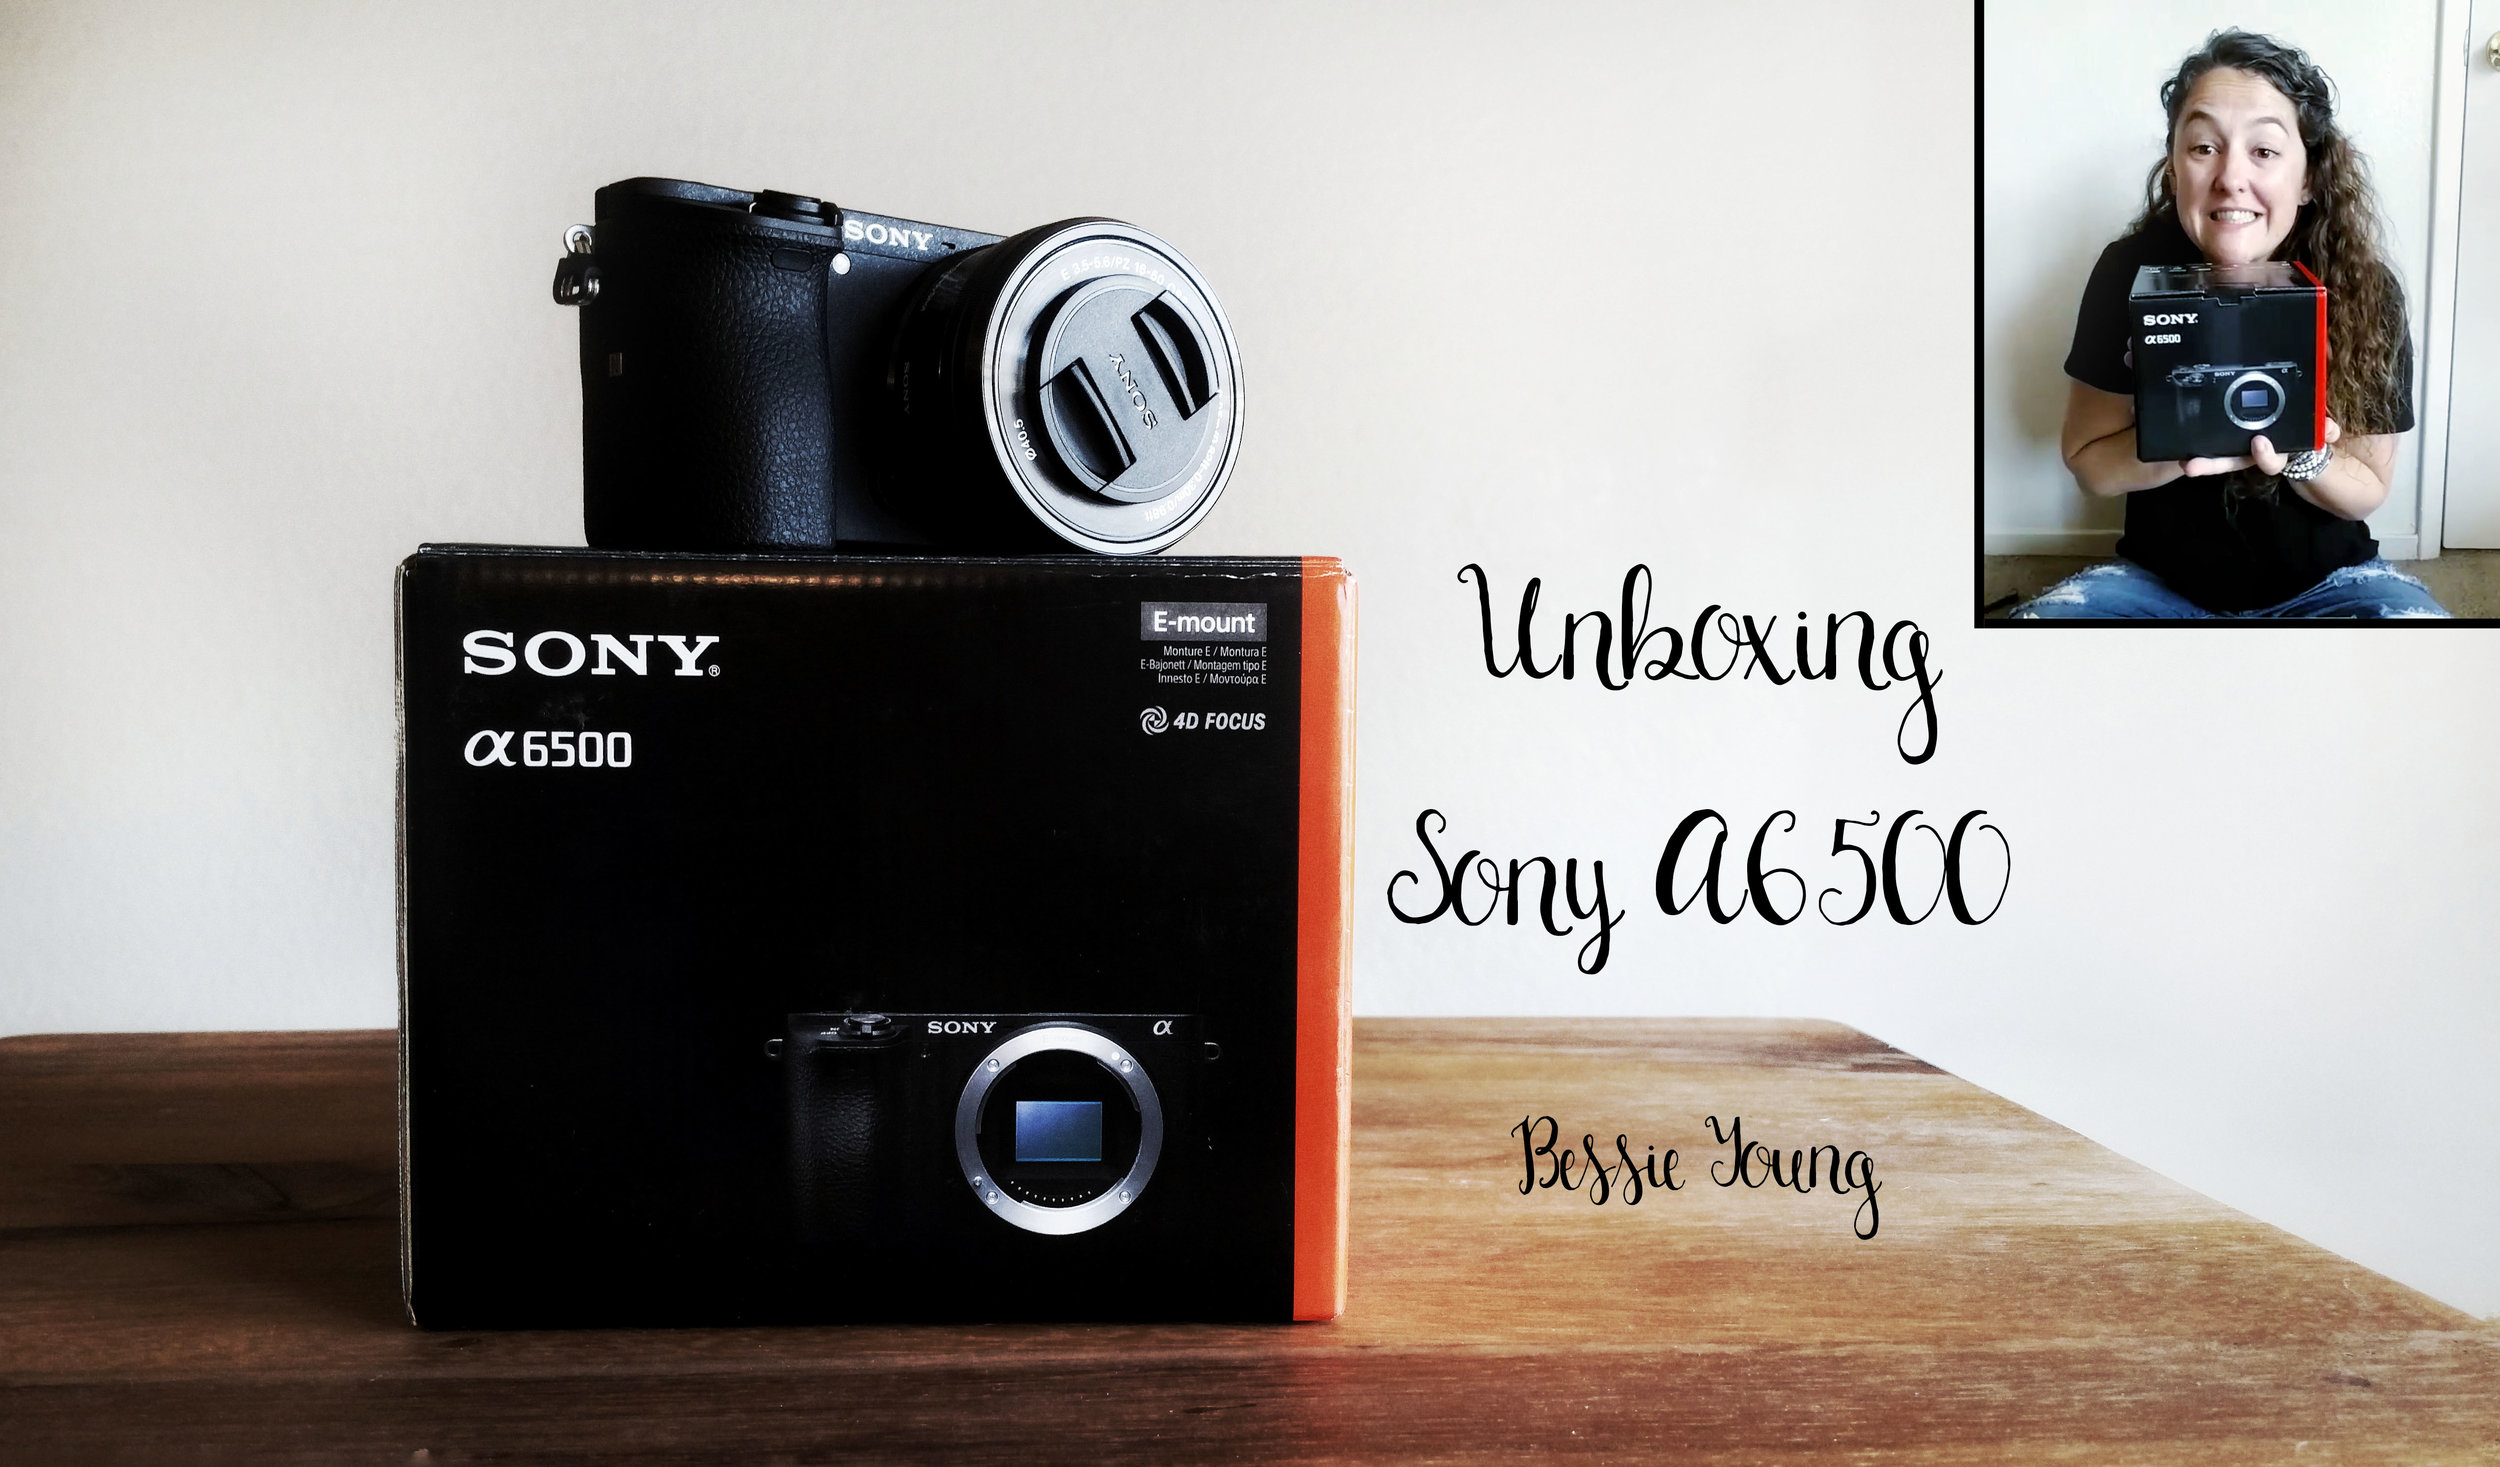 Unboxing-Sony-A6500.jpg